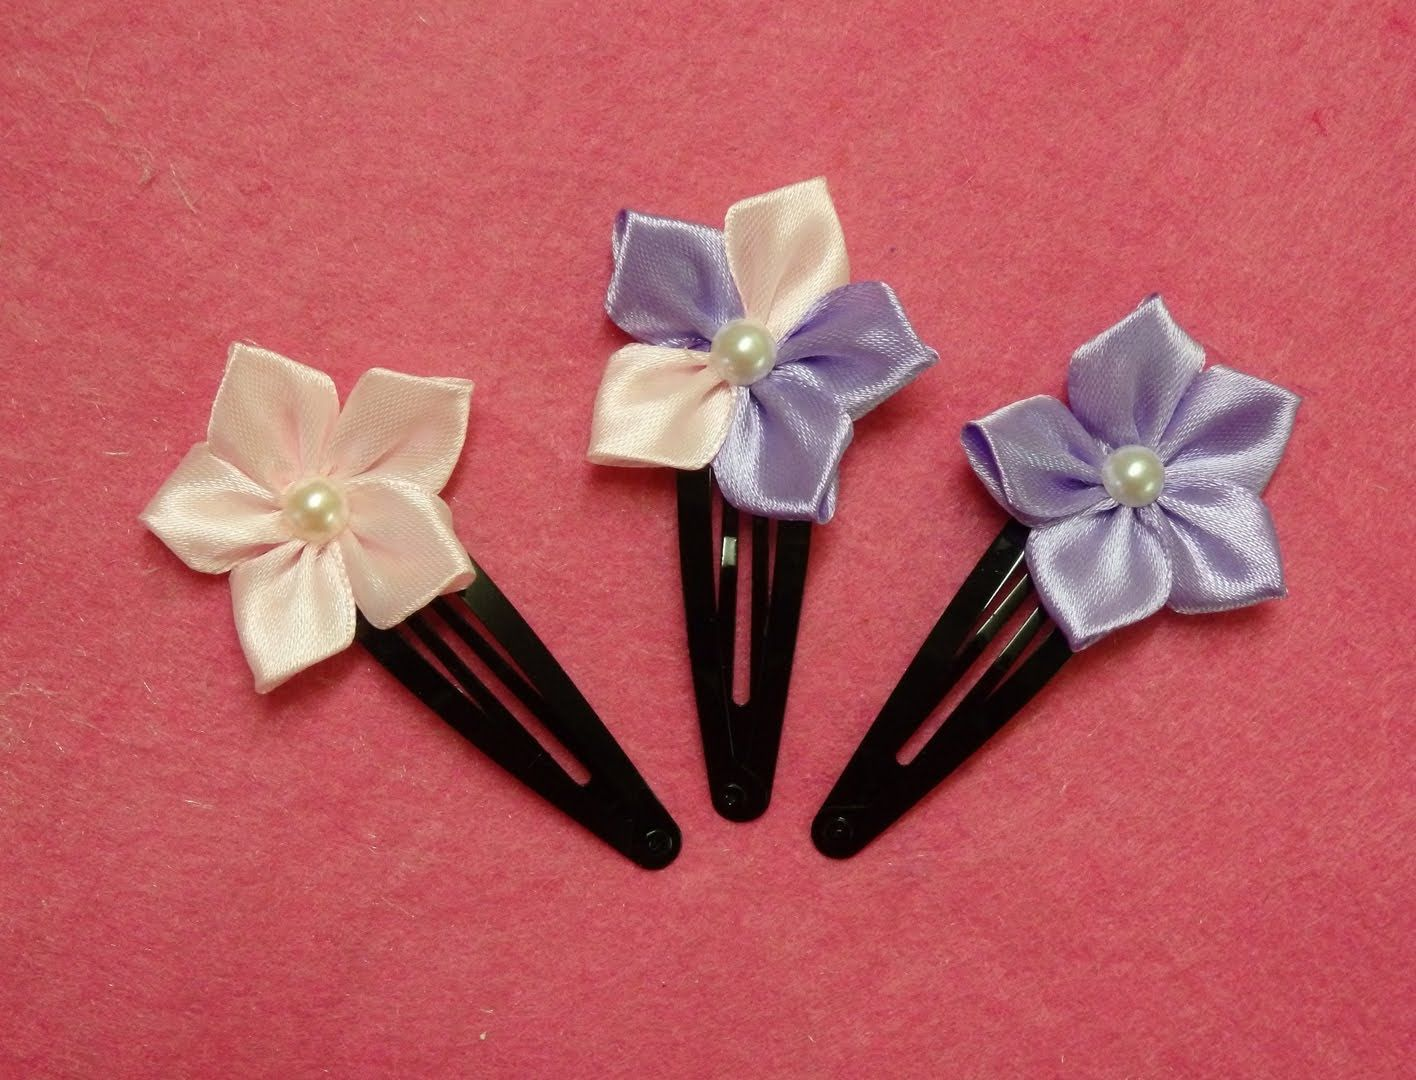 DIY kanzashi flower hairclips,ribbon flowers tutorial,how to make,kanzas...